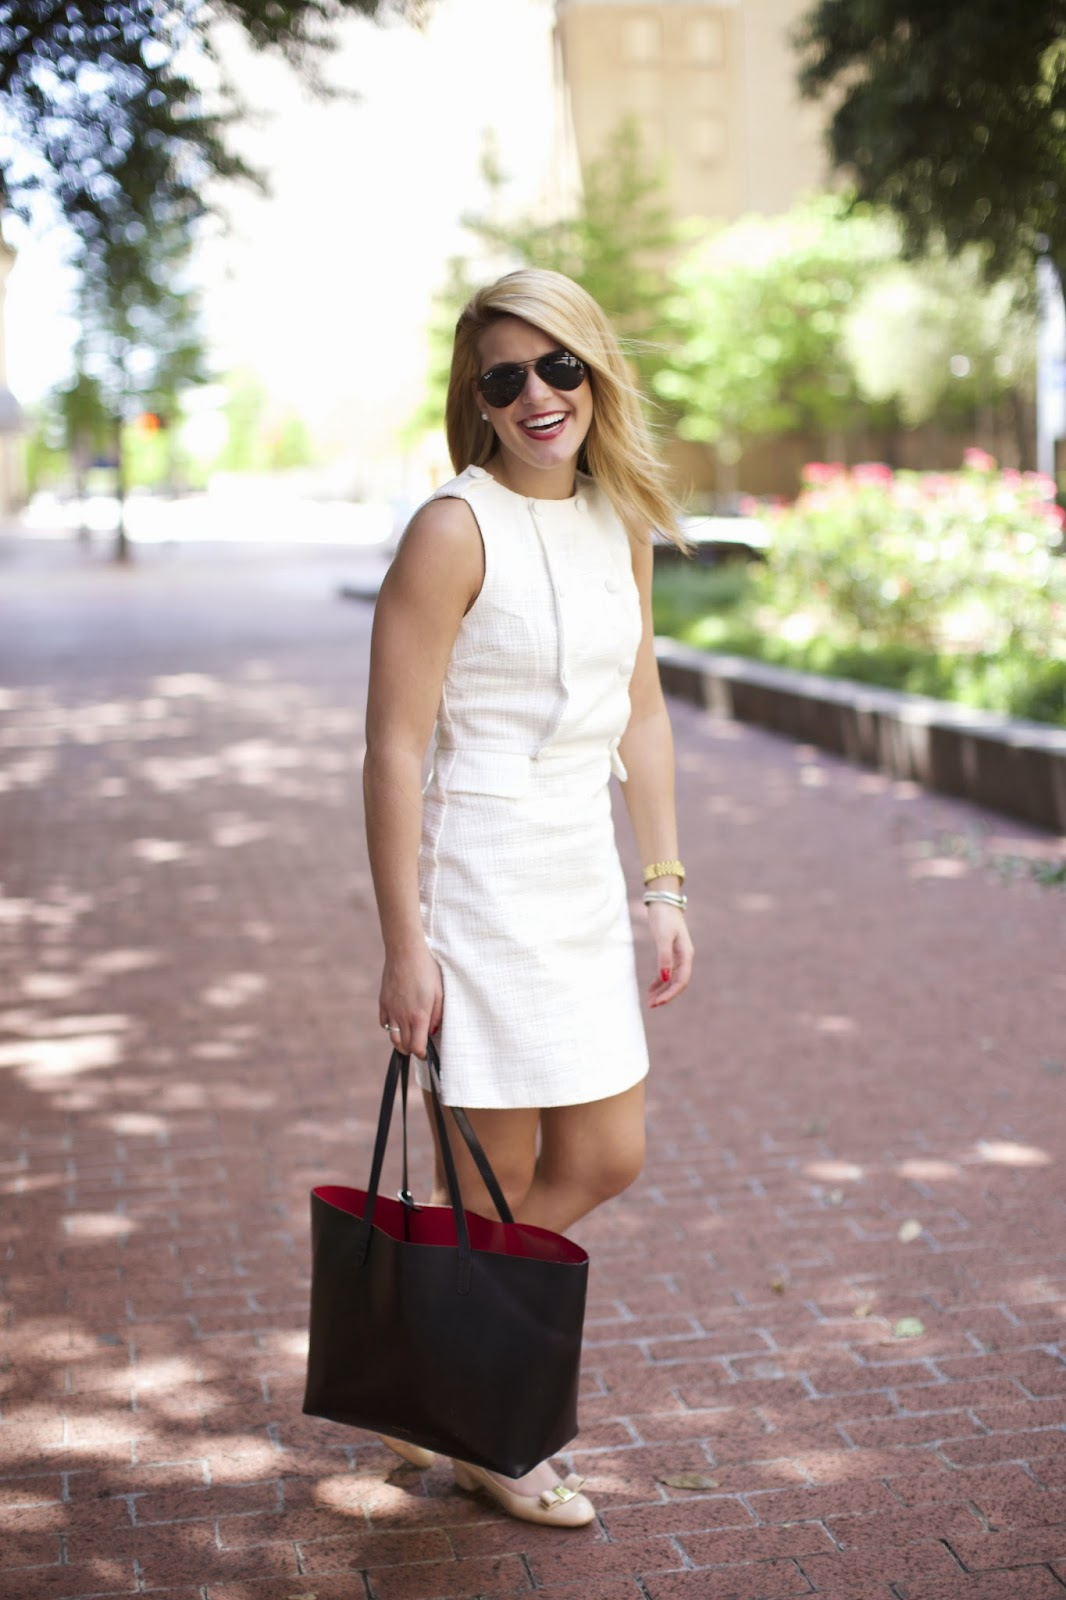 Little White dress and mansur gavriel tote